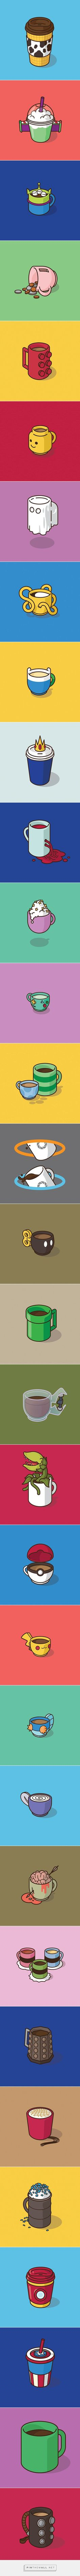 There's a Capp for That! on Behance - created via http://pinthemall.net